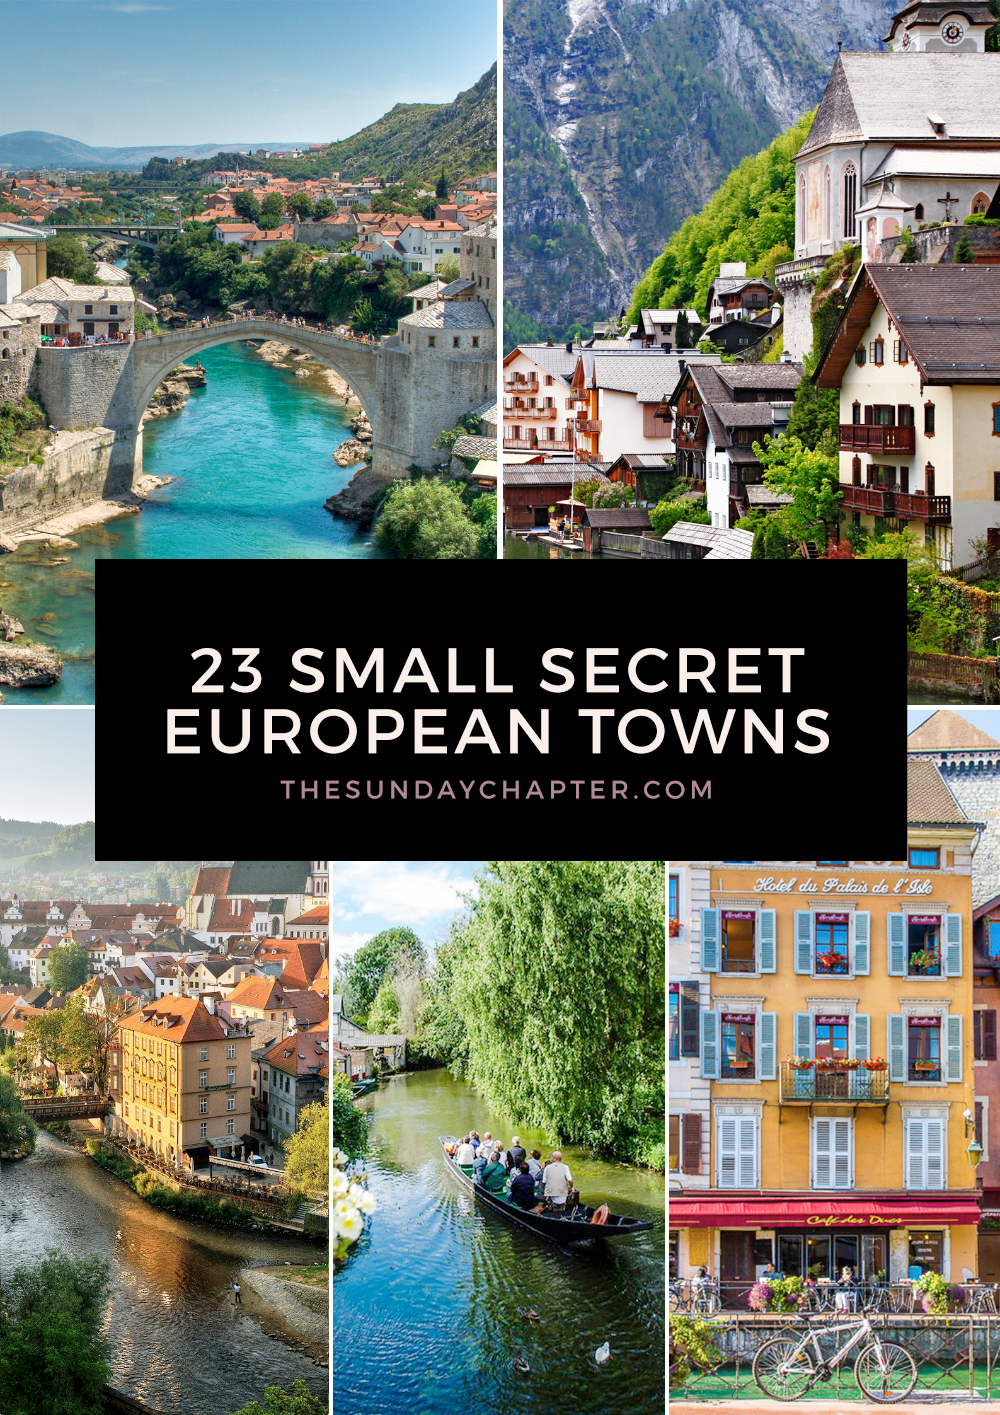 Small Secret European Towns You Must Visit Destinations - The 11 most beautiful and underrated destinations in western europe